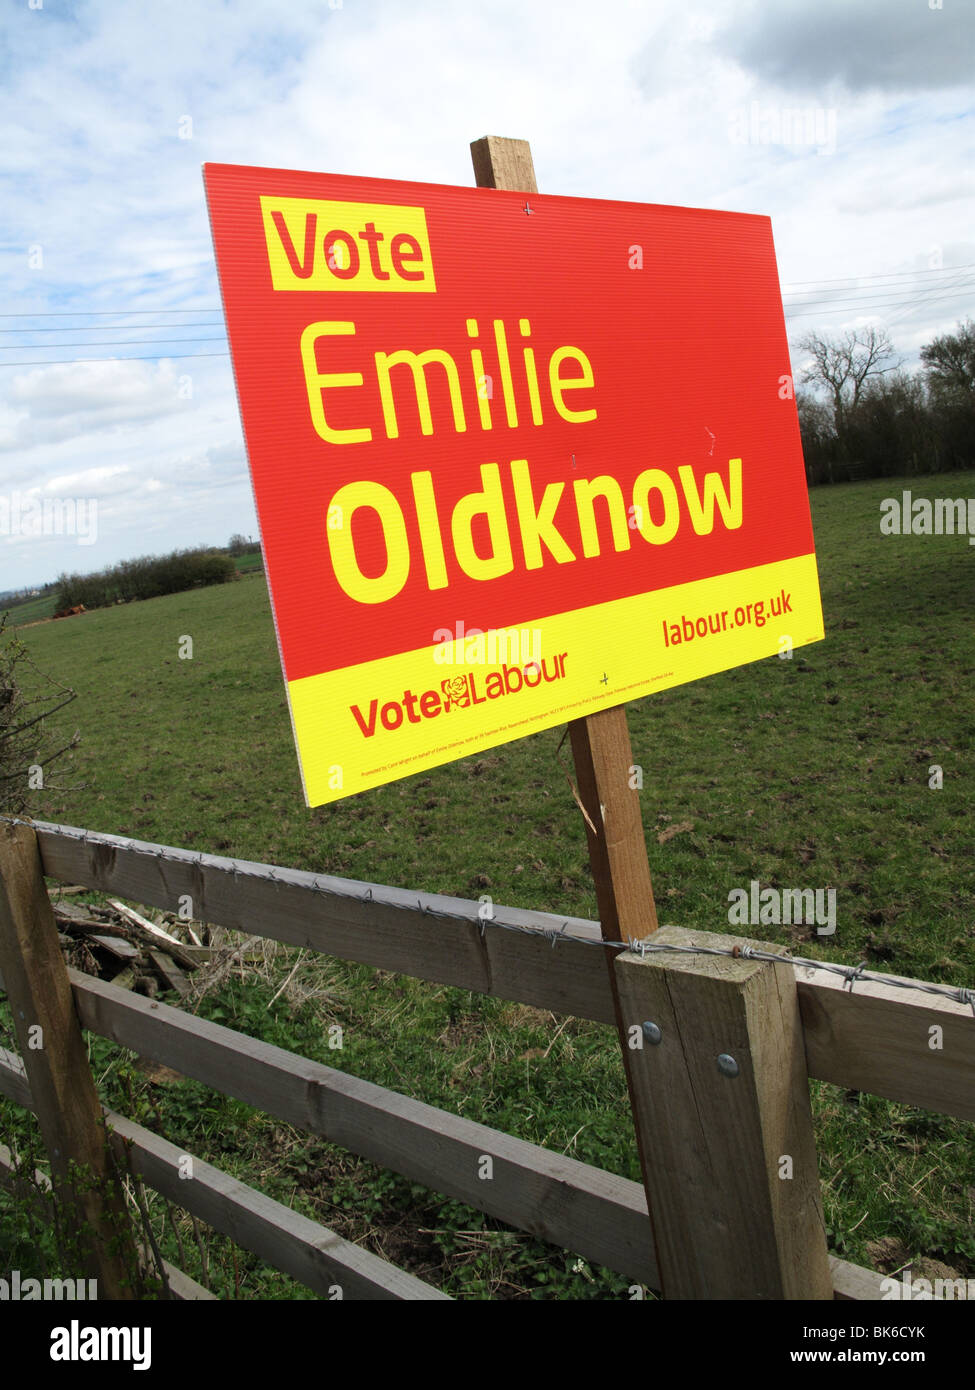 A roadside sign supporting an East Midlands Labour Party candidate in the 2010 U.K. General Election. - Stock Image